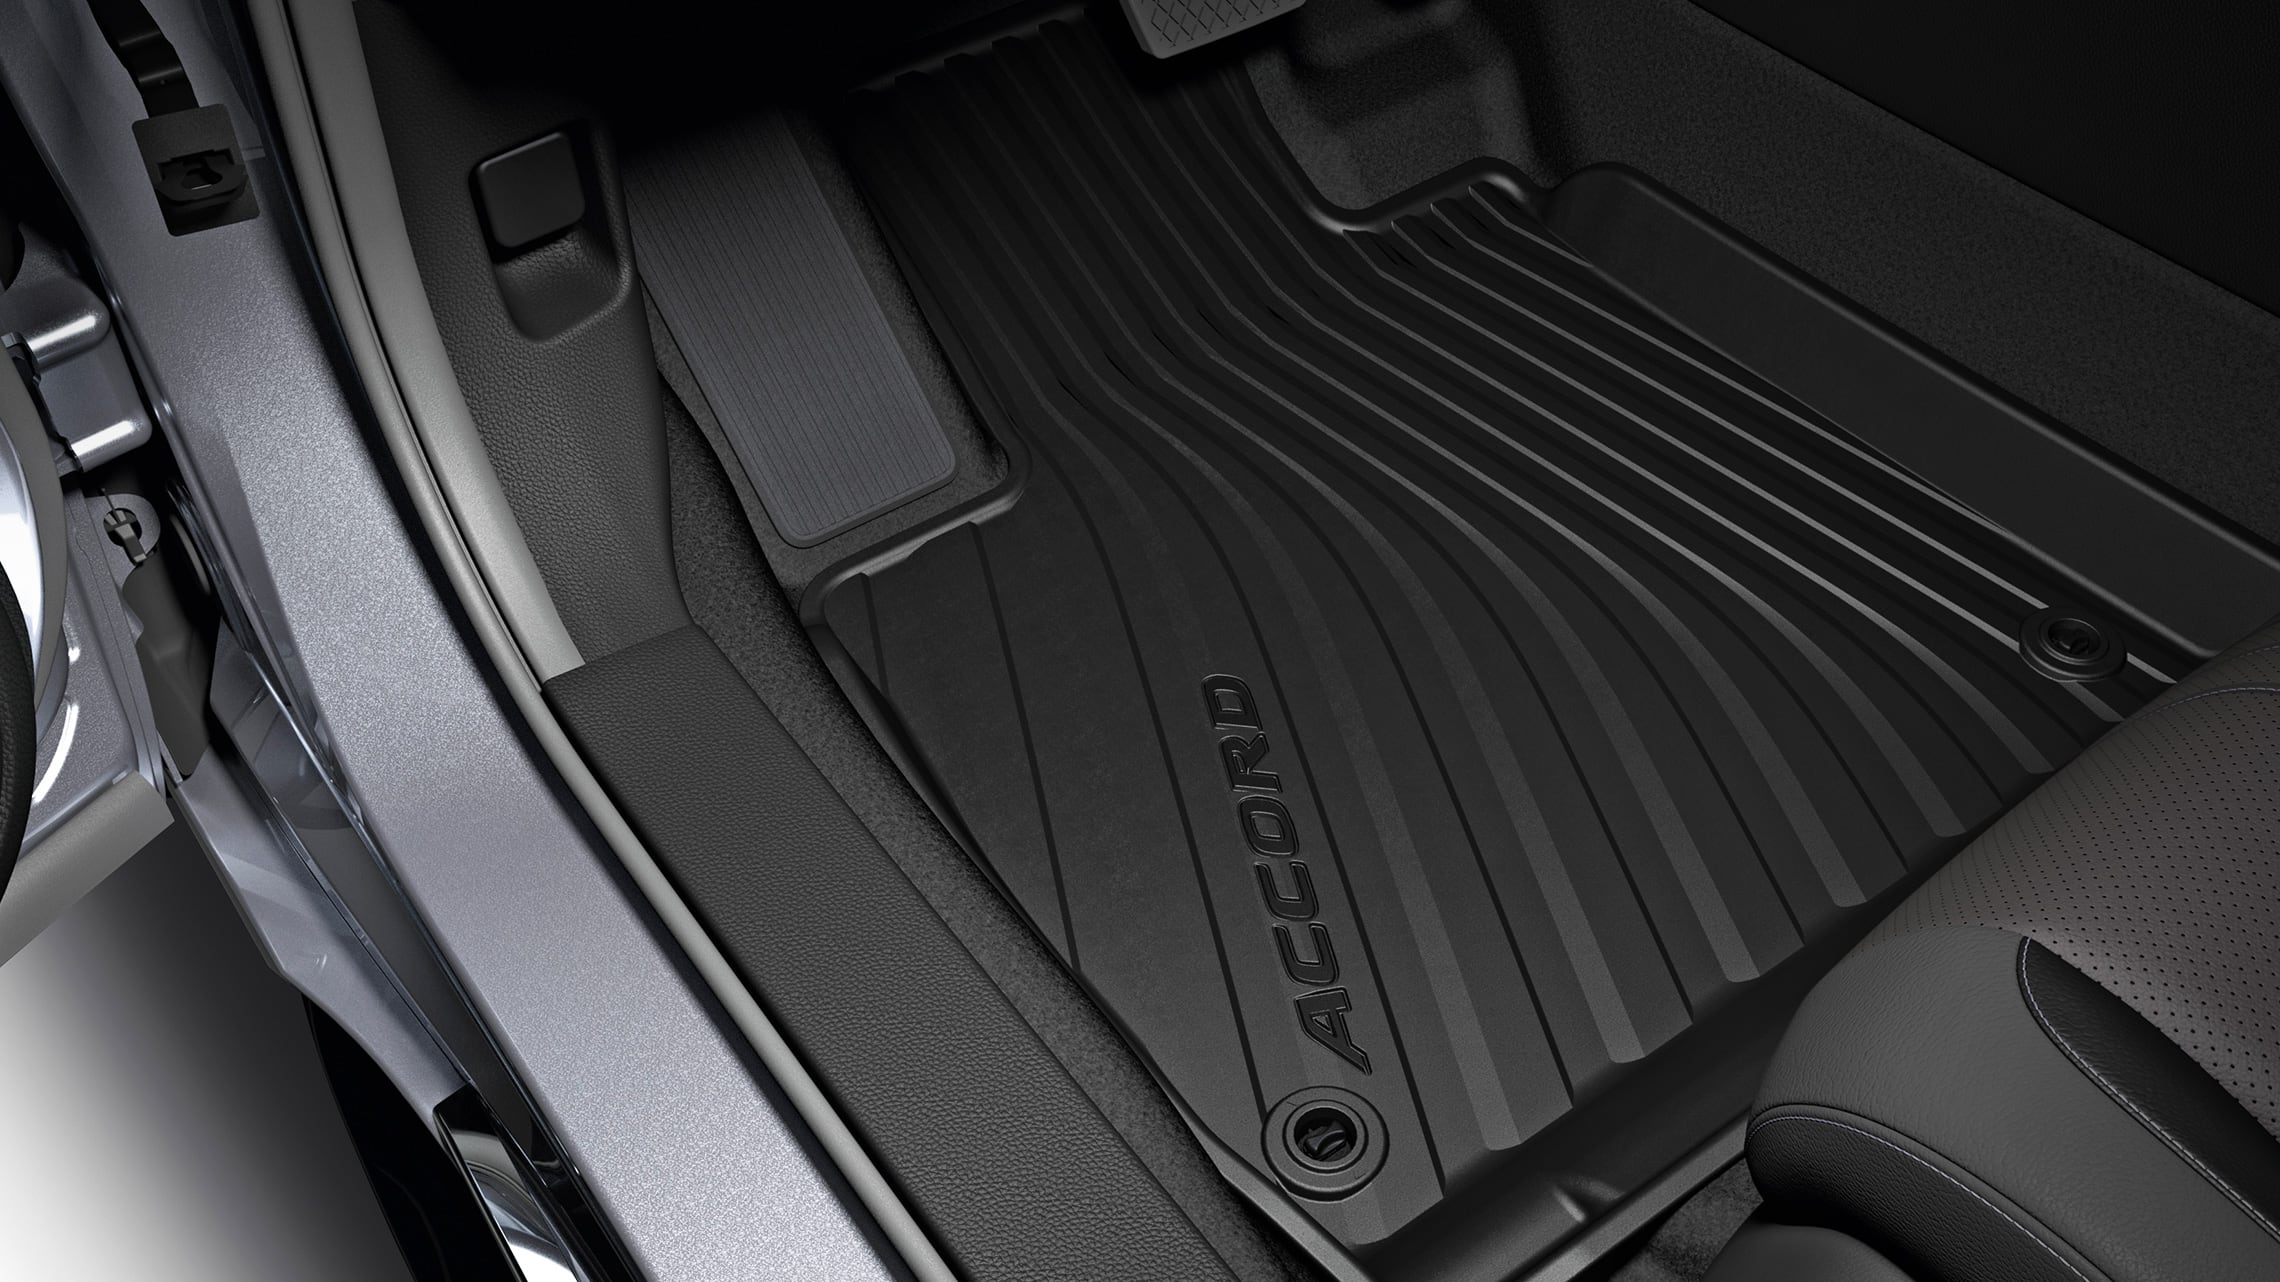 All-season floor mat accessory detail in the 2020 Honda Accord.